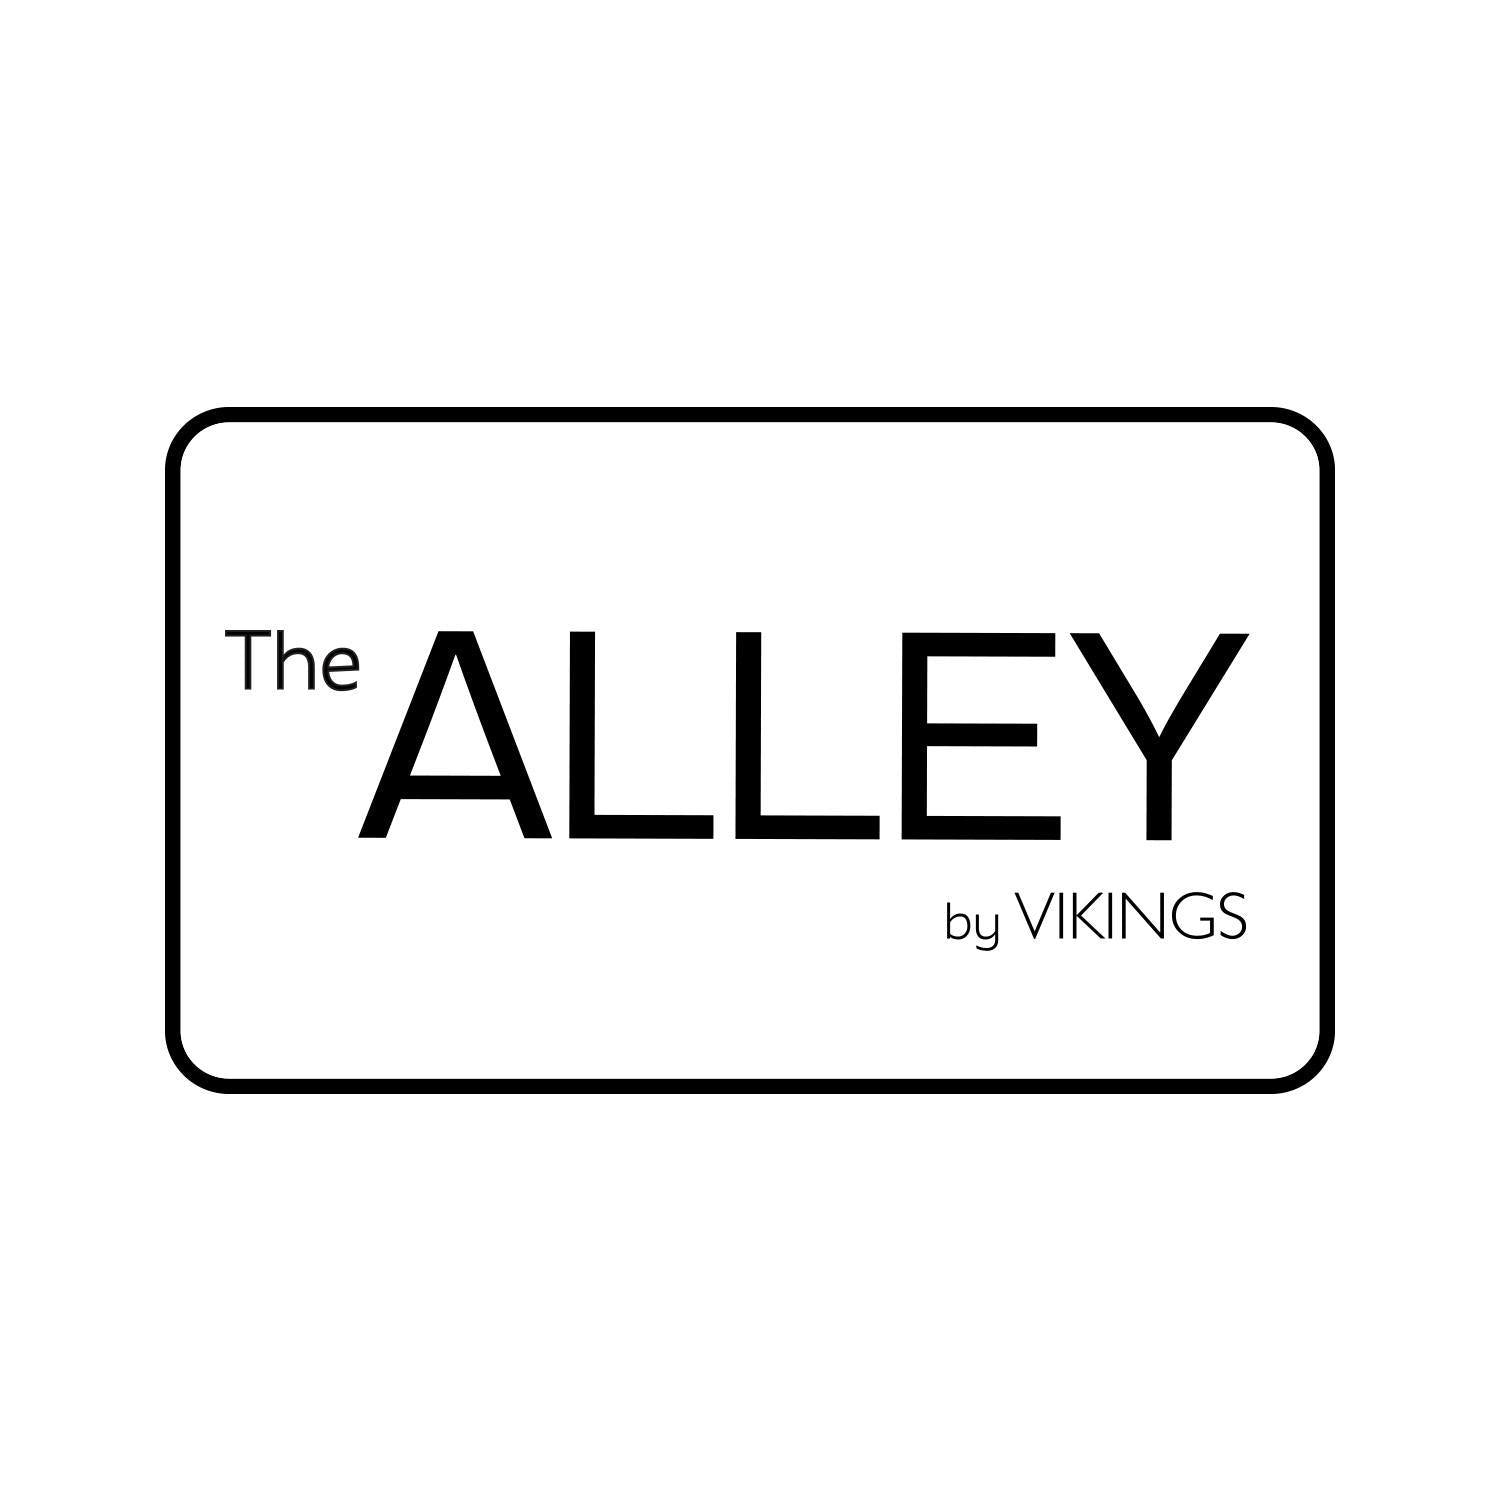 The Alley by Vikings BGC